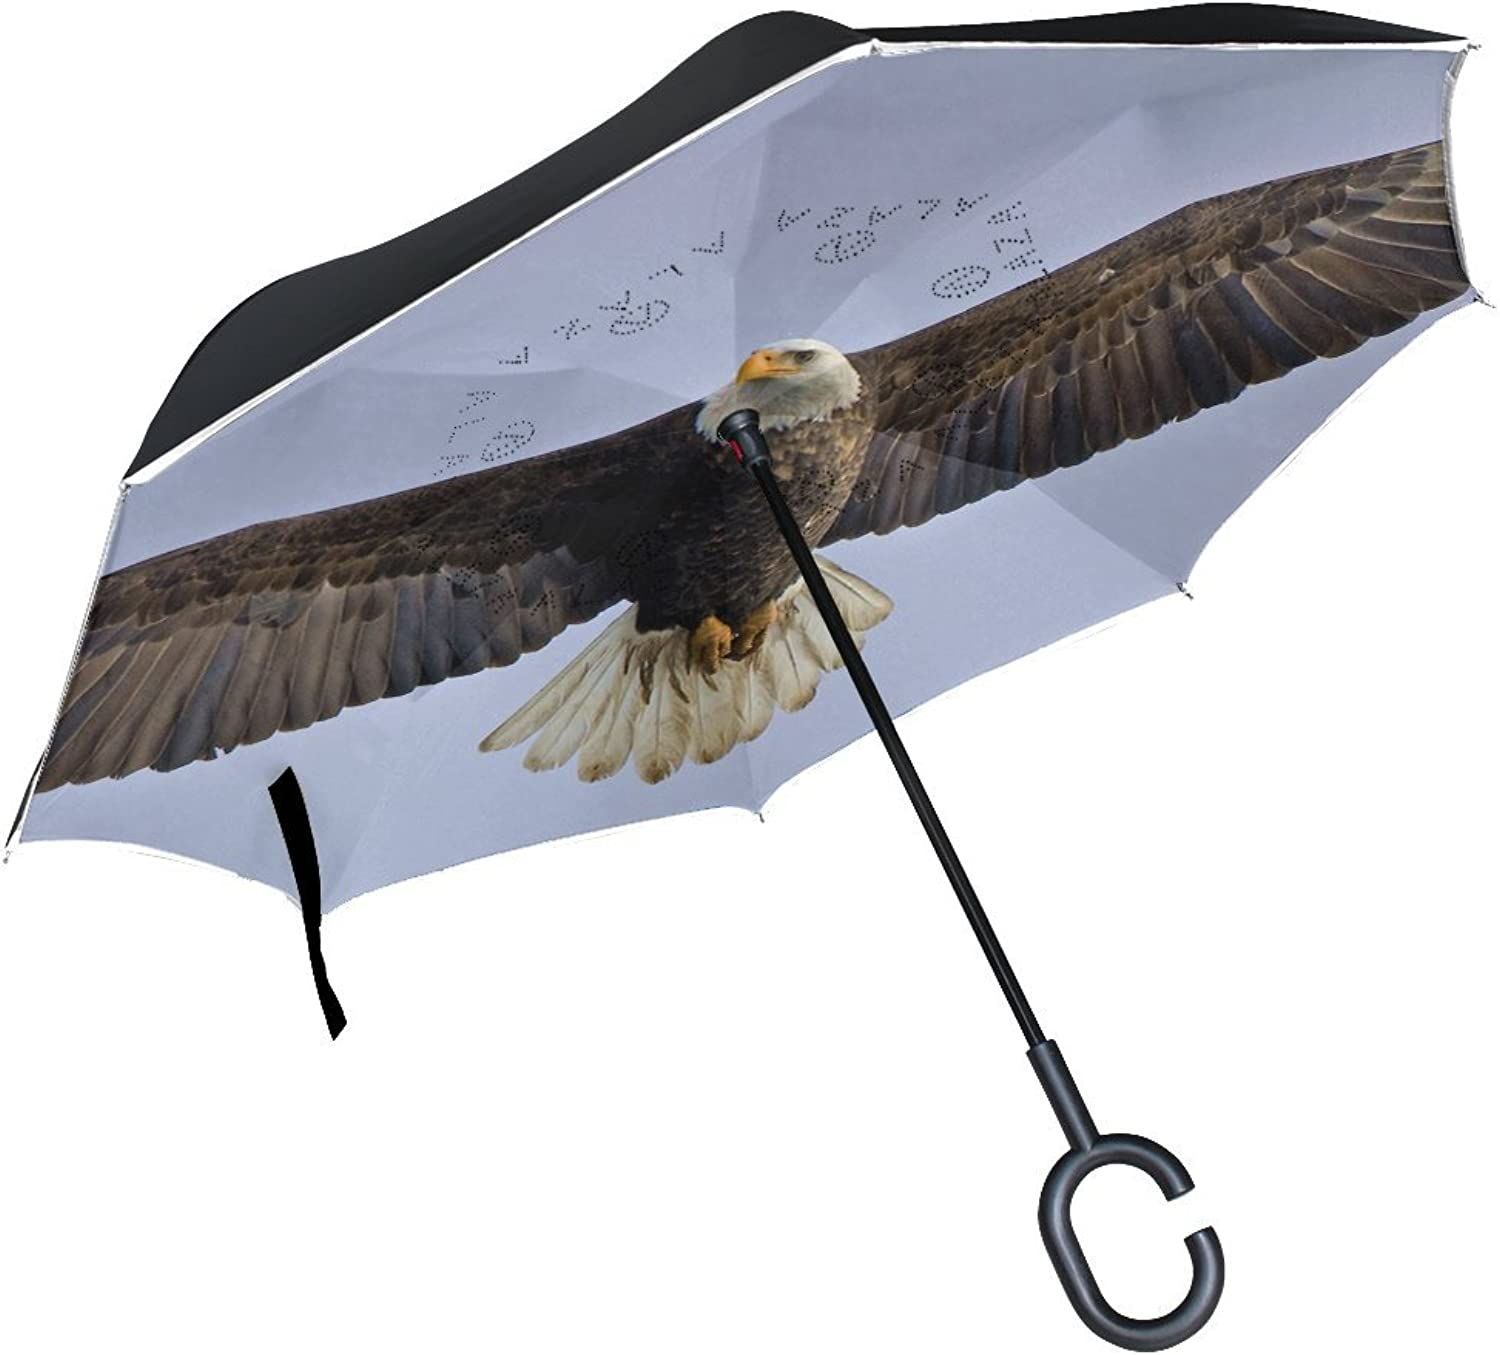 Animal Eagle Adorable Little Pet Cute Wild Flying Ingreened Umbrella Large Double Layer Outdoor Rain Sun Car Reversible Umbrella